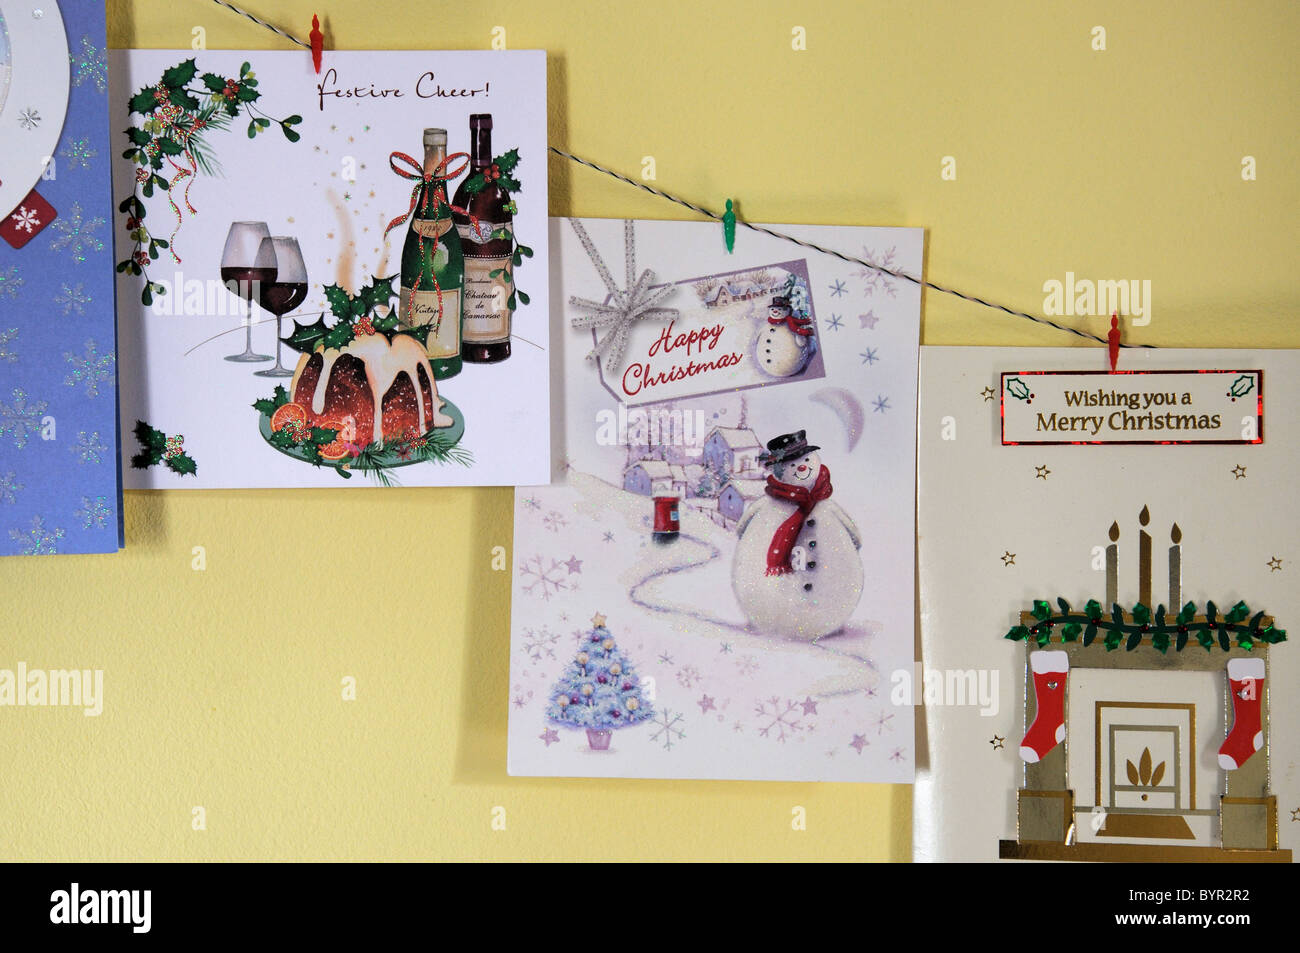 Christmas cards hanging on a string Stock Photo: 34313190 - Alamy